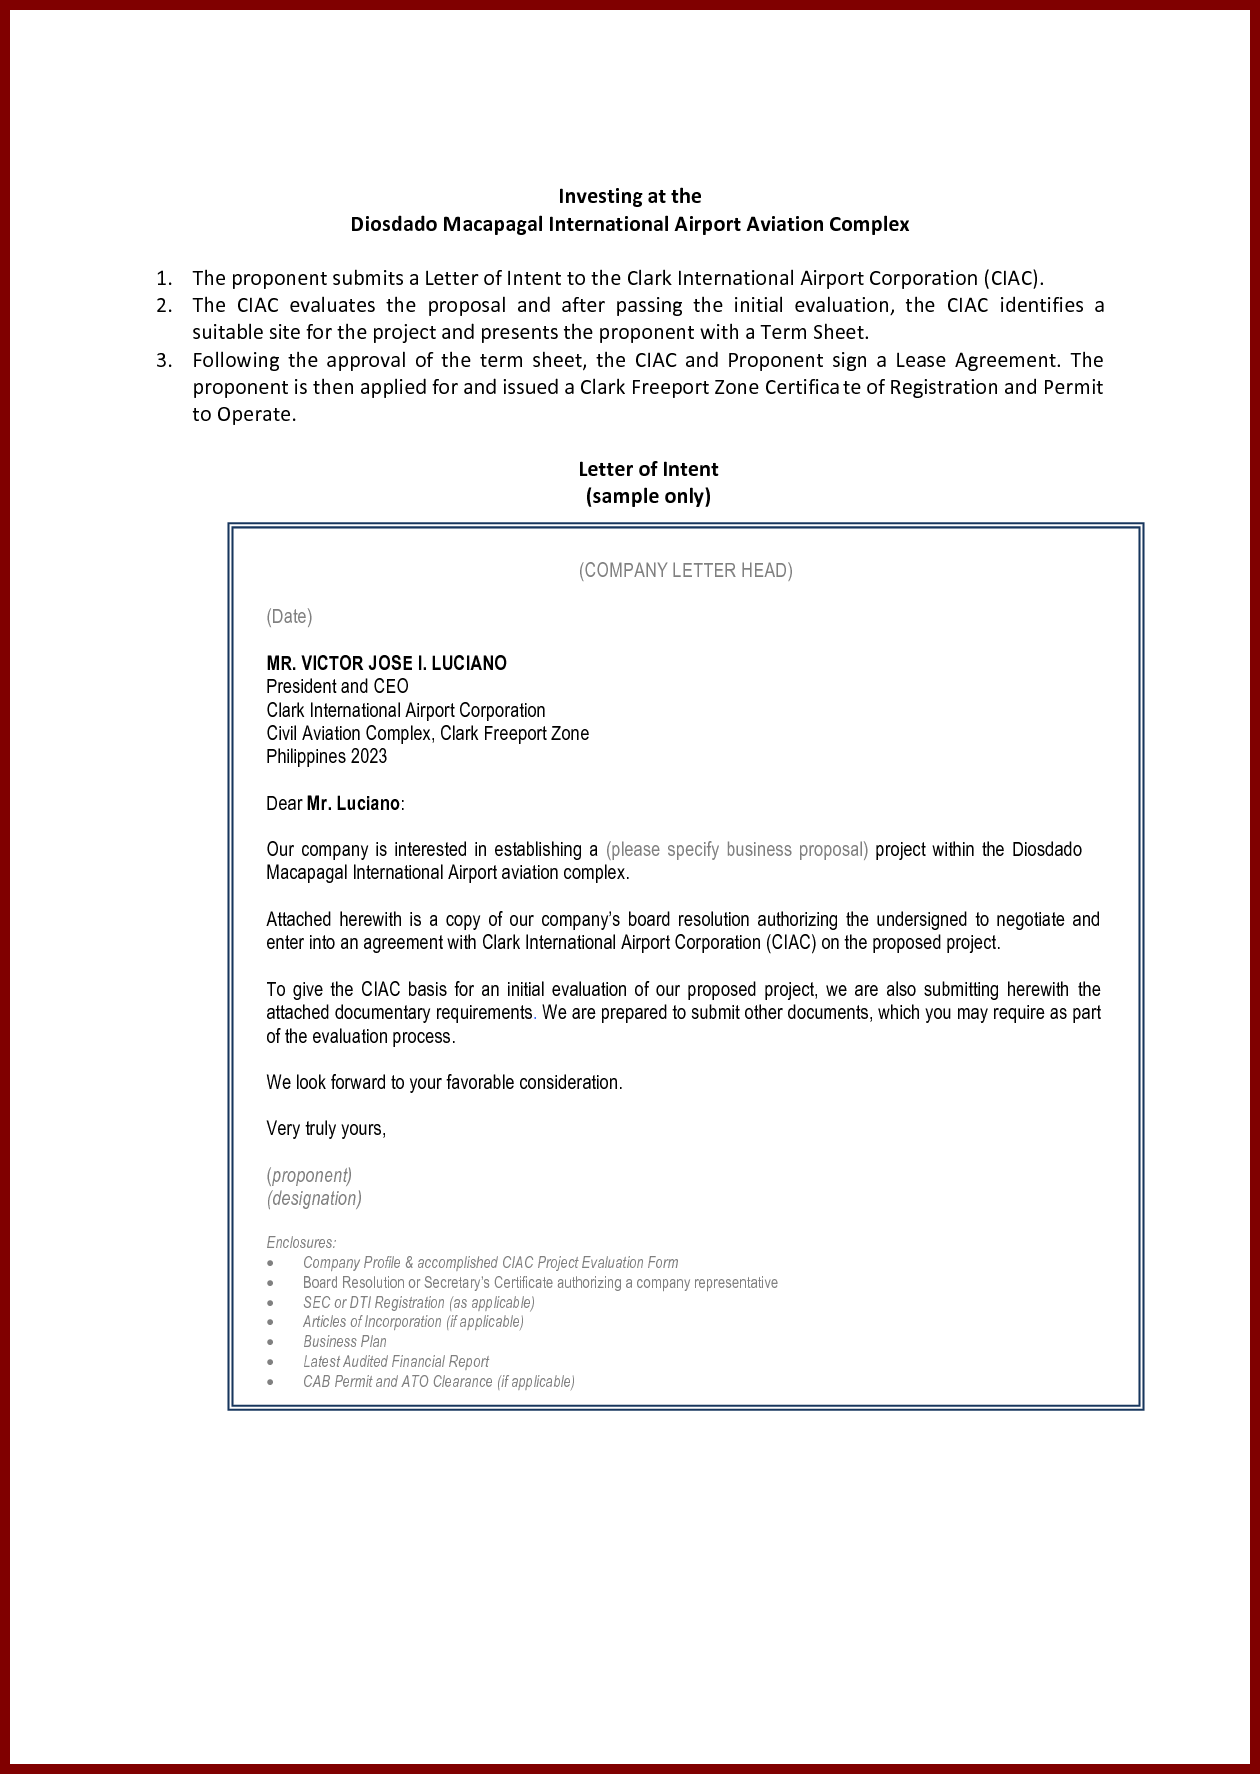 Canteen Proposal Letter Sample Sendlettersfo Business For Cake Store Mhz  Proposal Letter Format